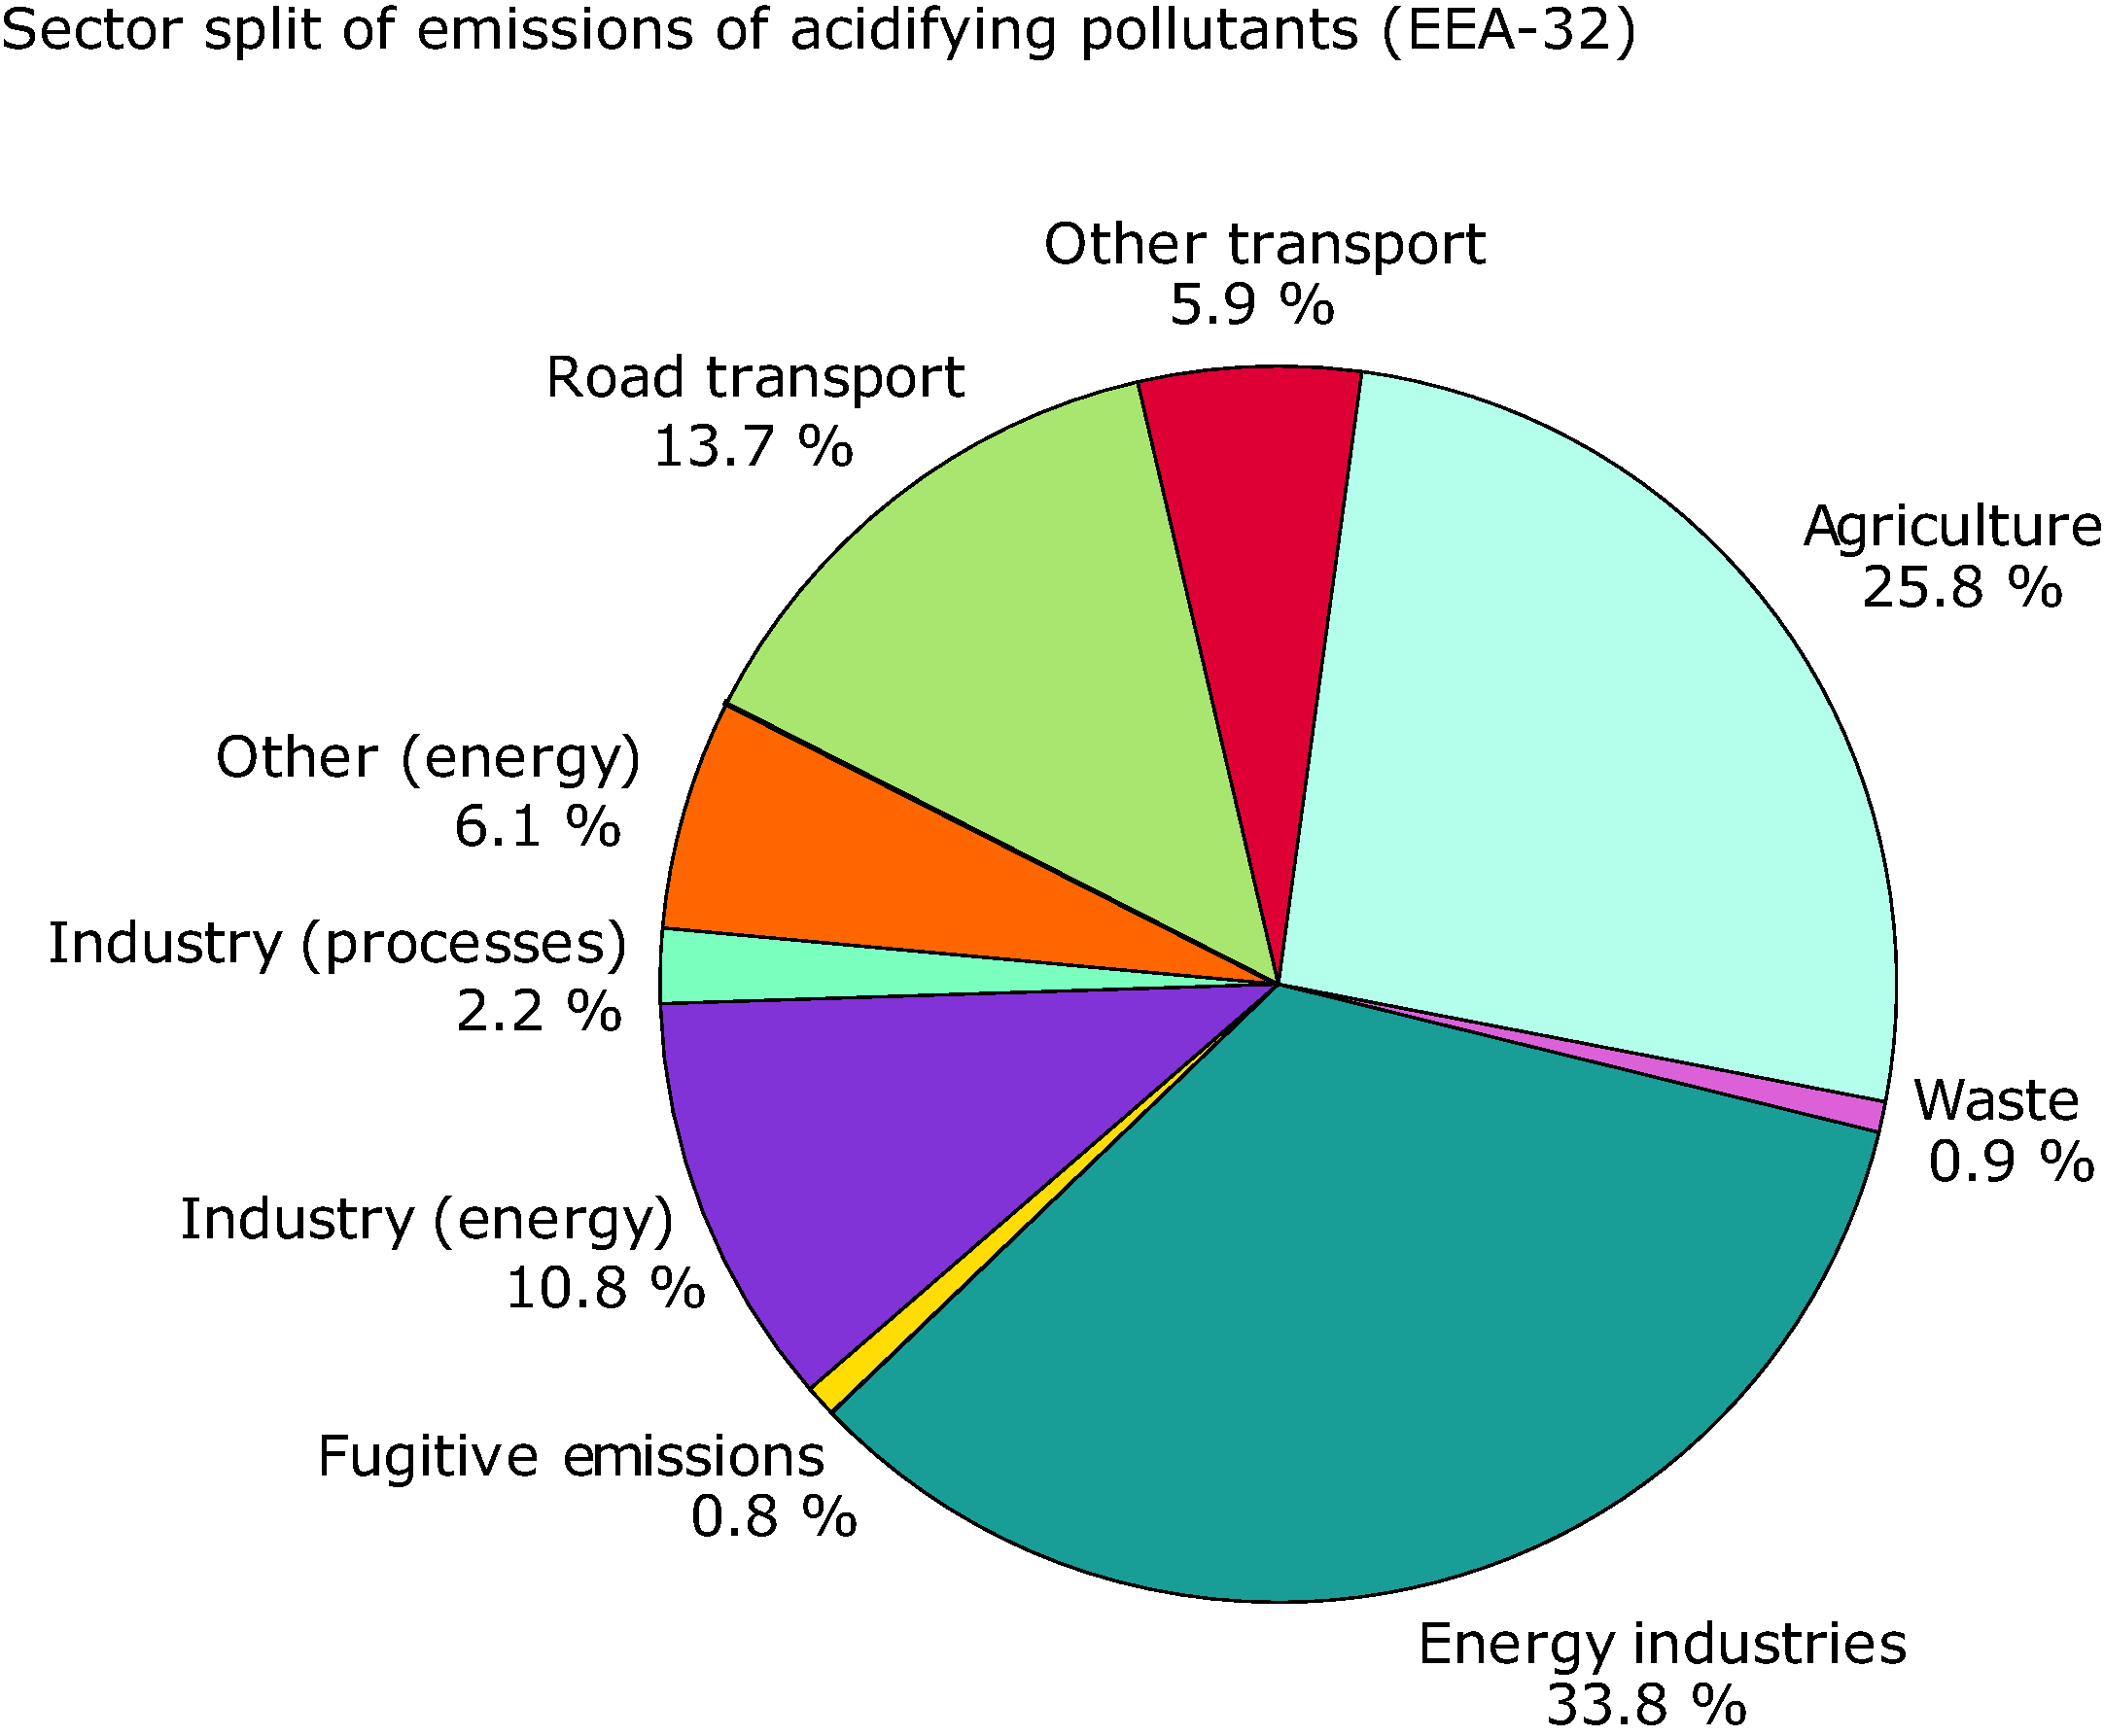 Sector split for emissions of acidifying pollutants (EEA member countries), 2002